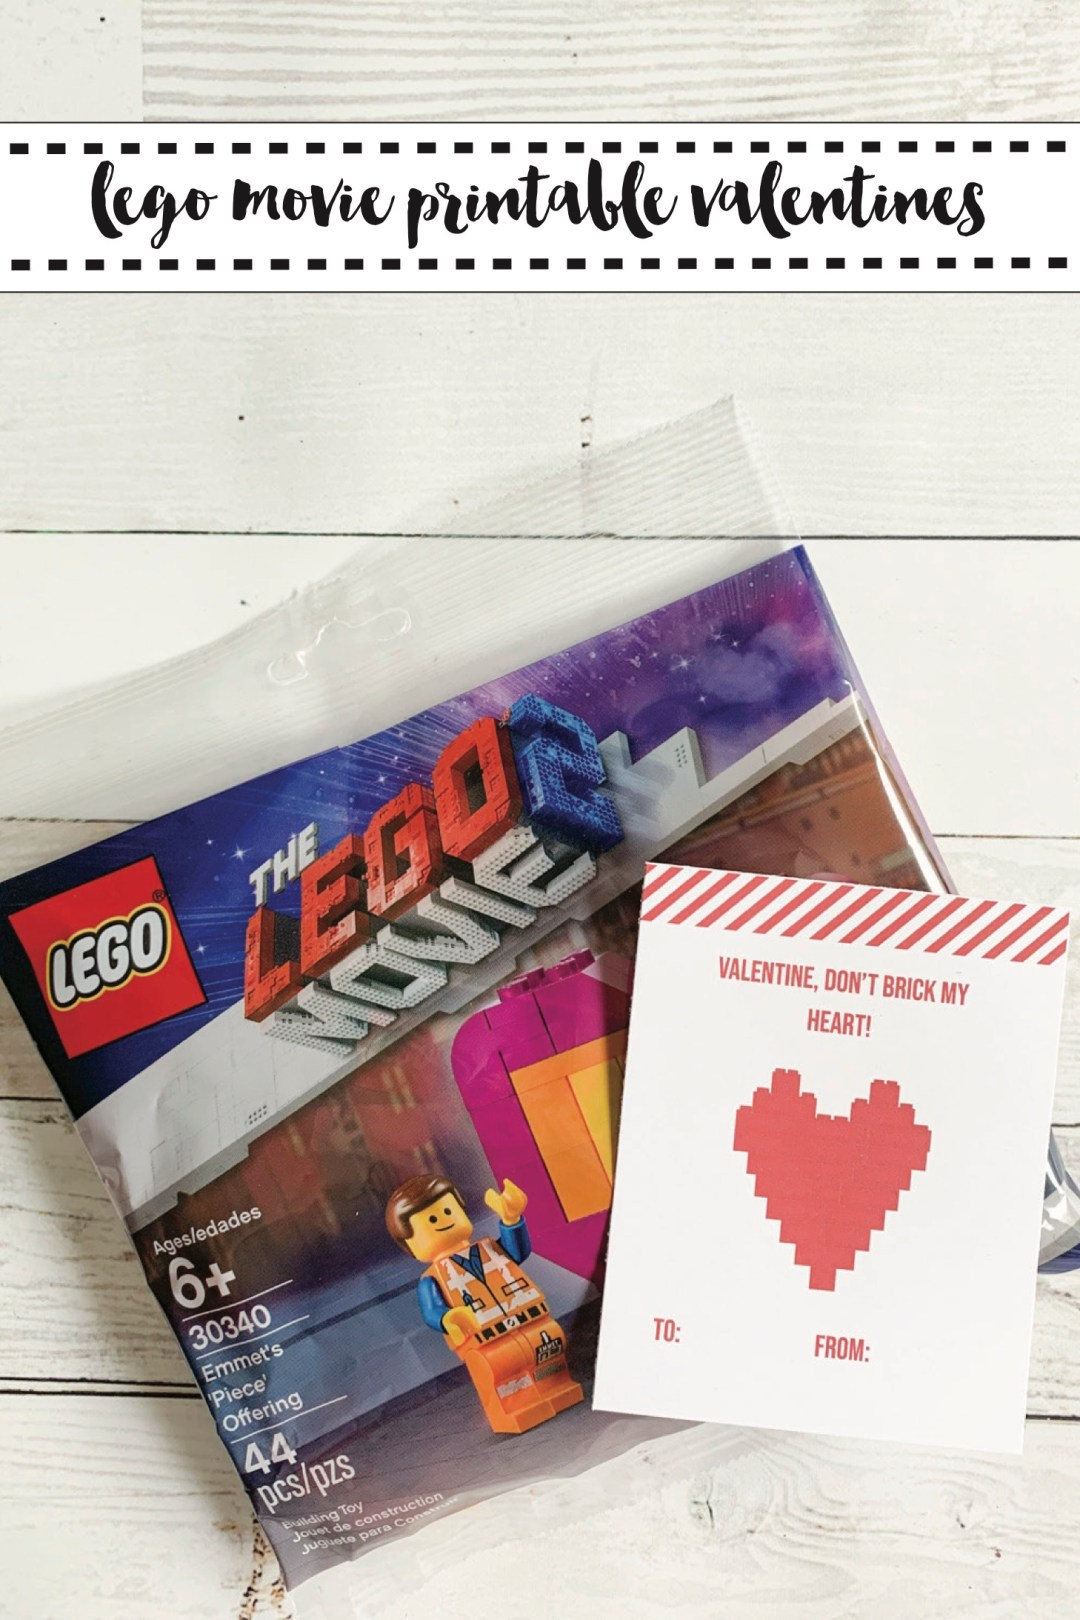 LEGO Movie Valentine's Day Card